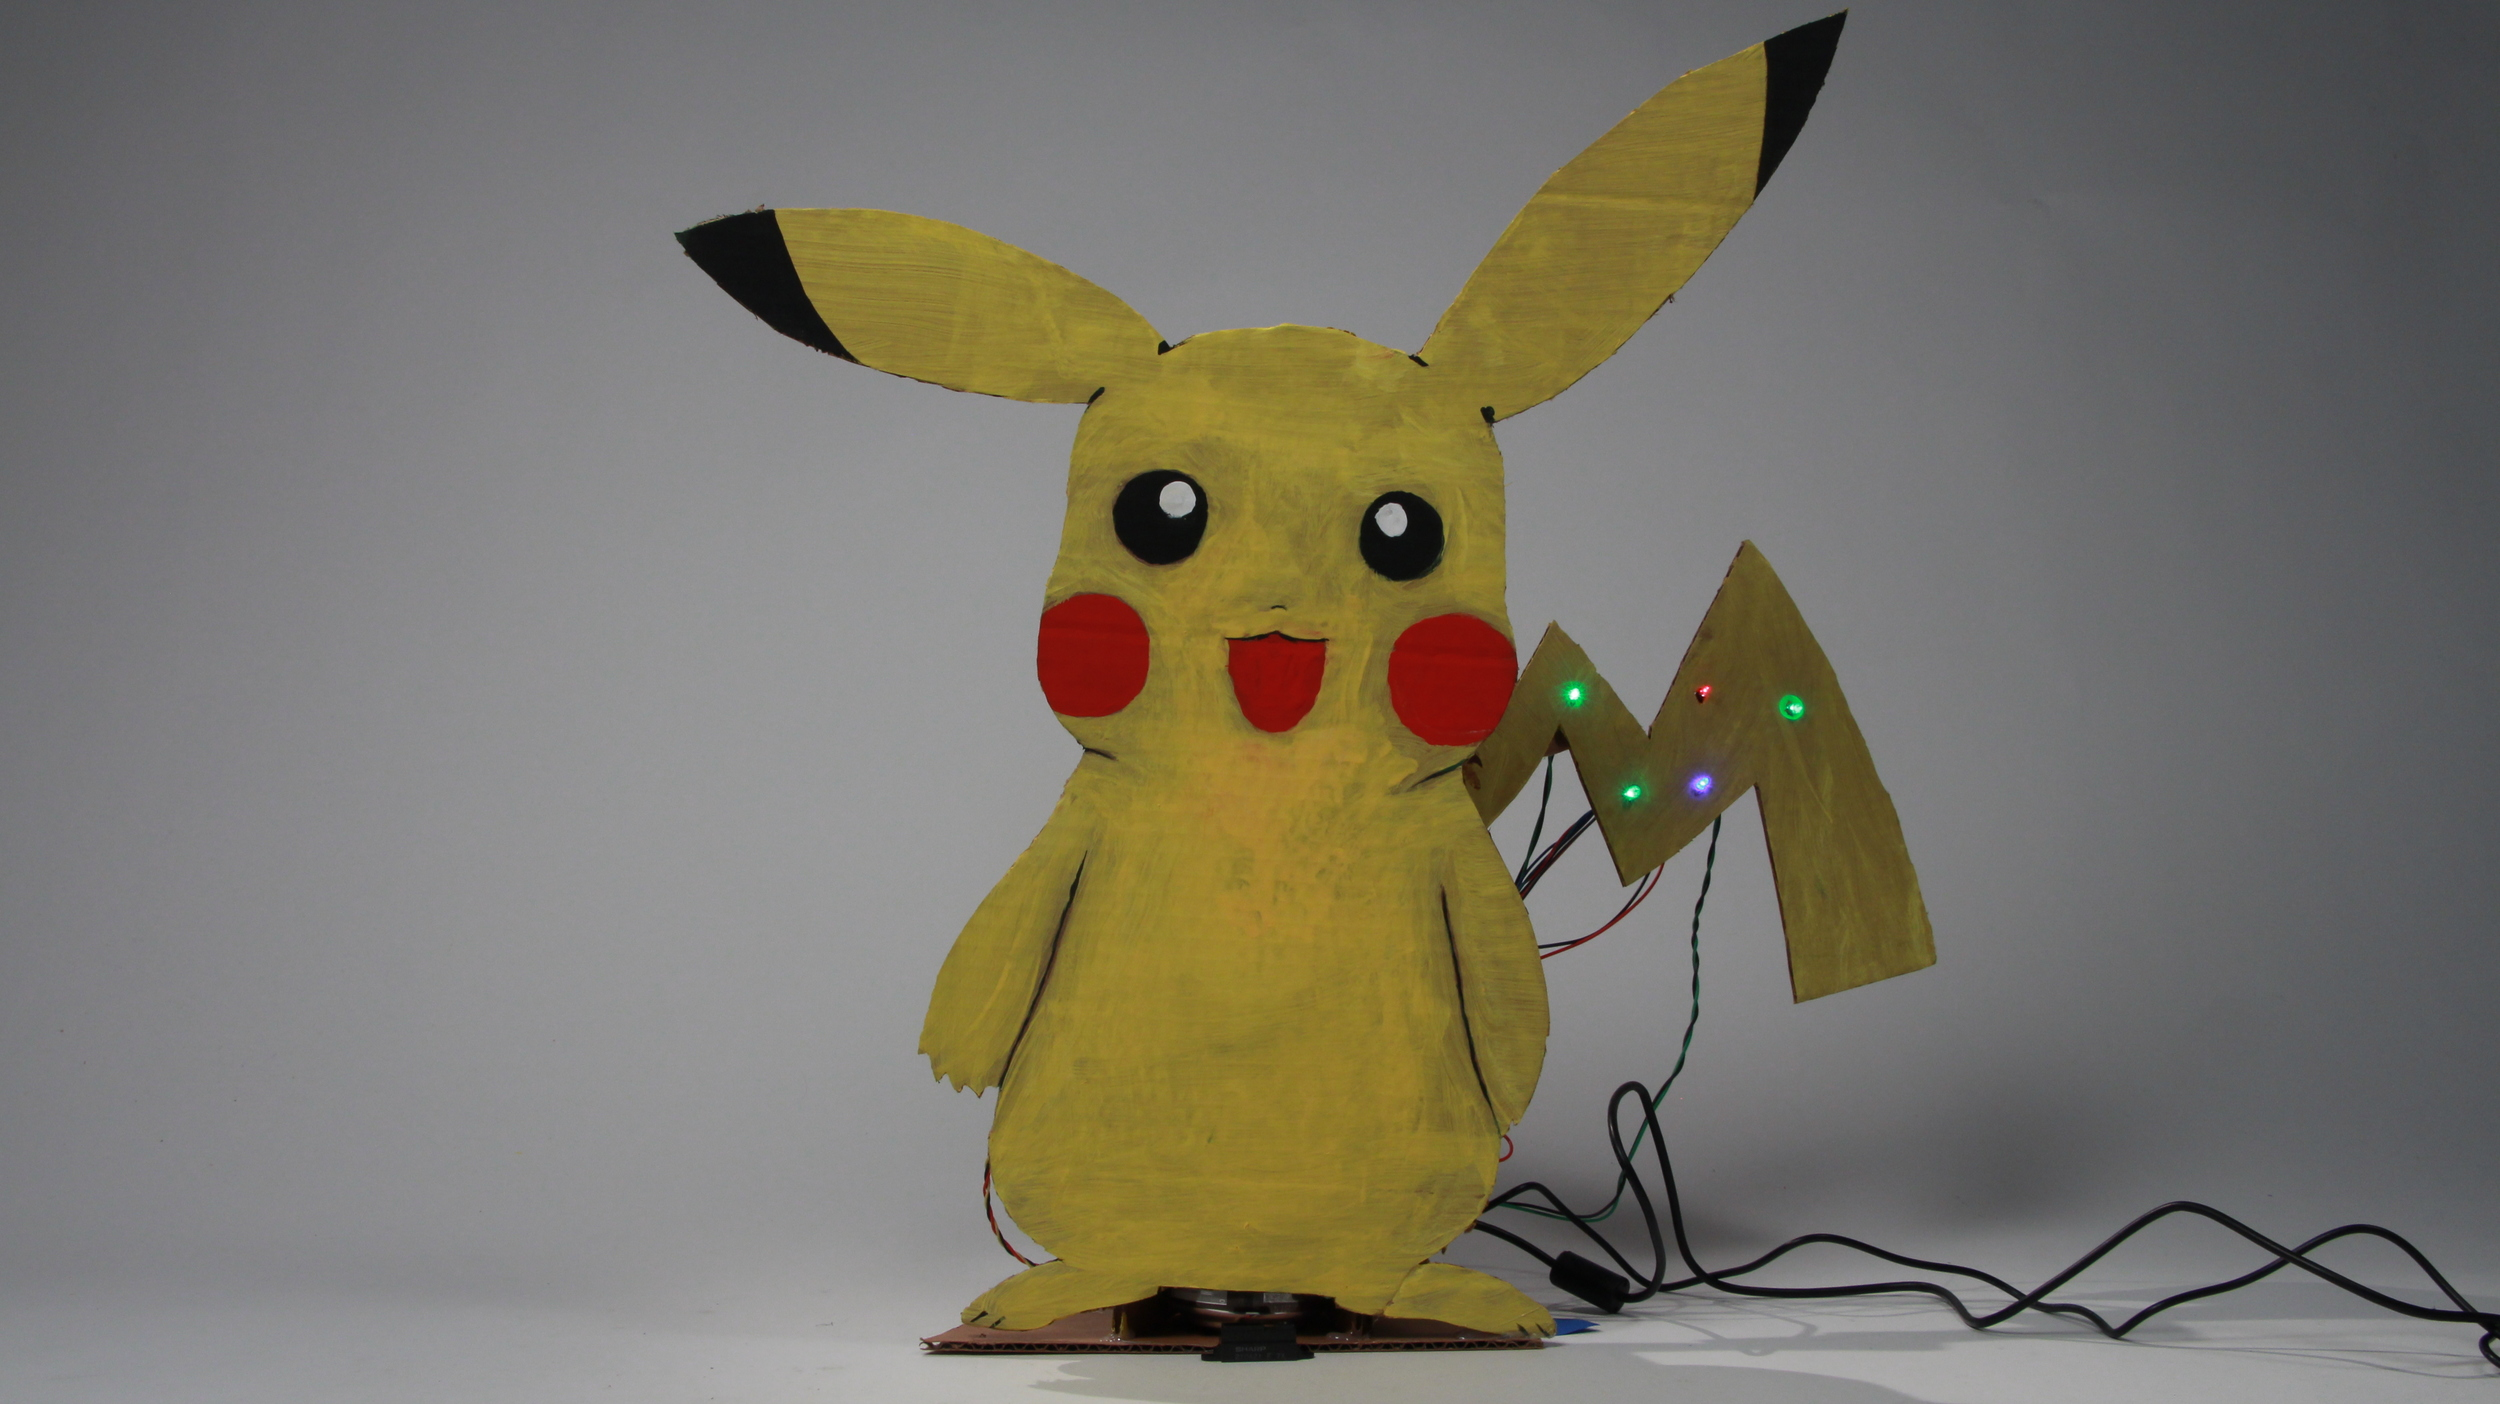 Picachu. Designed by Cameron